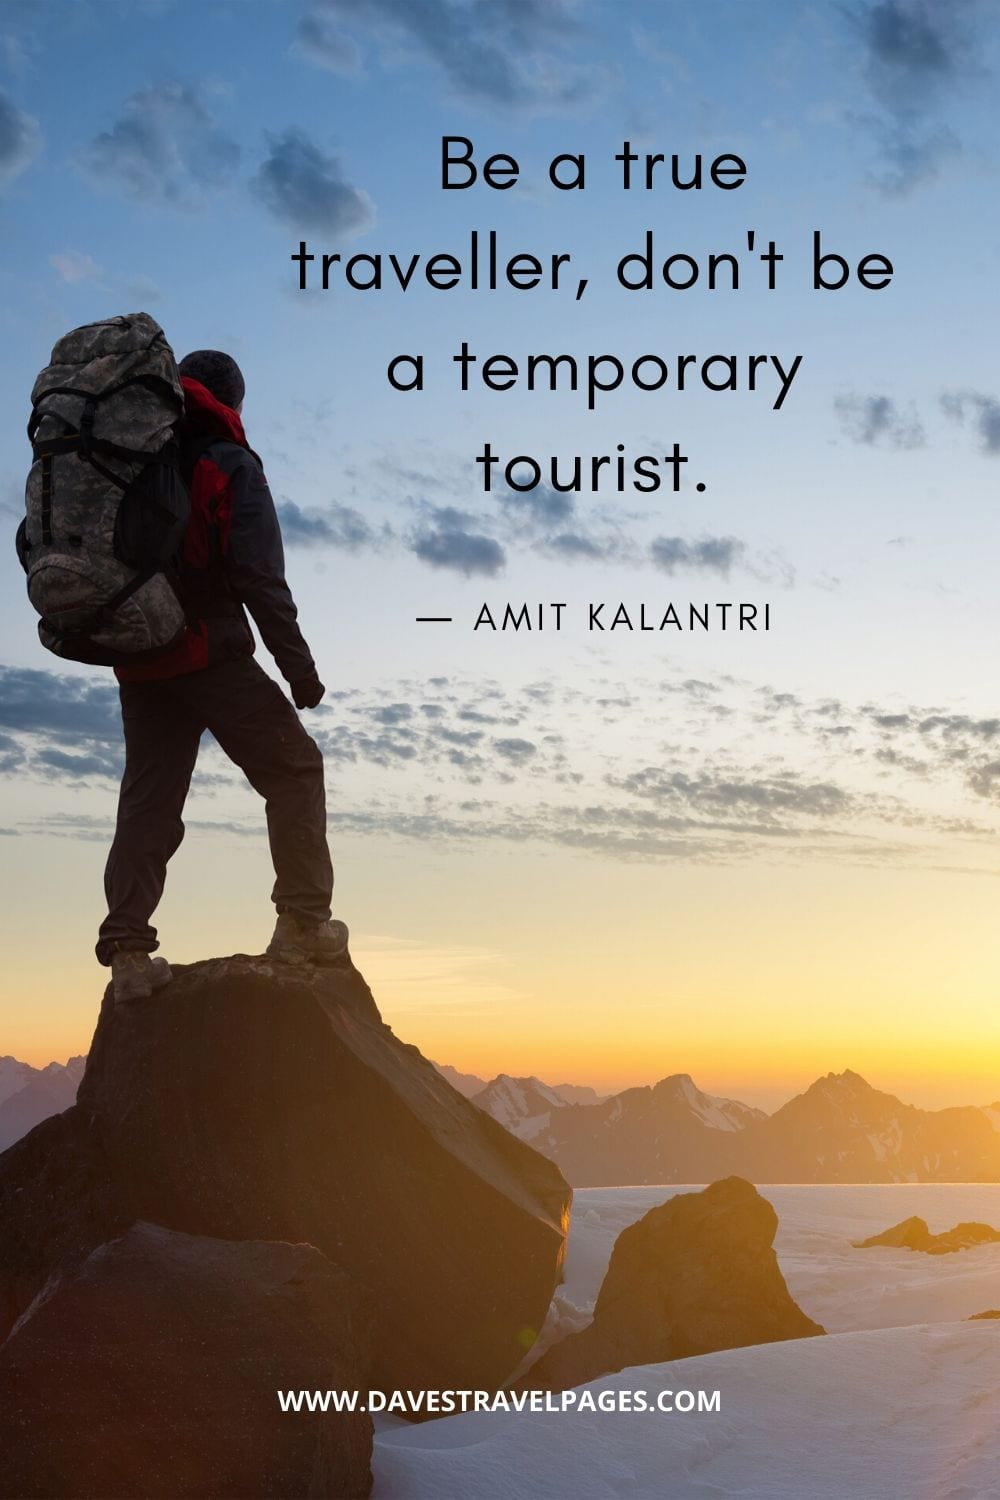 Travel Quotes - Be a true traveller, don't be a temporary tourist.